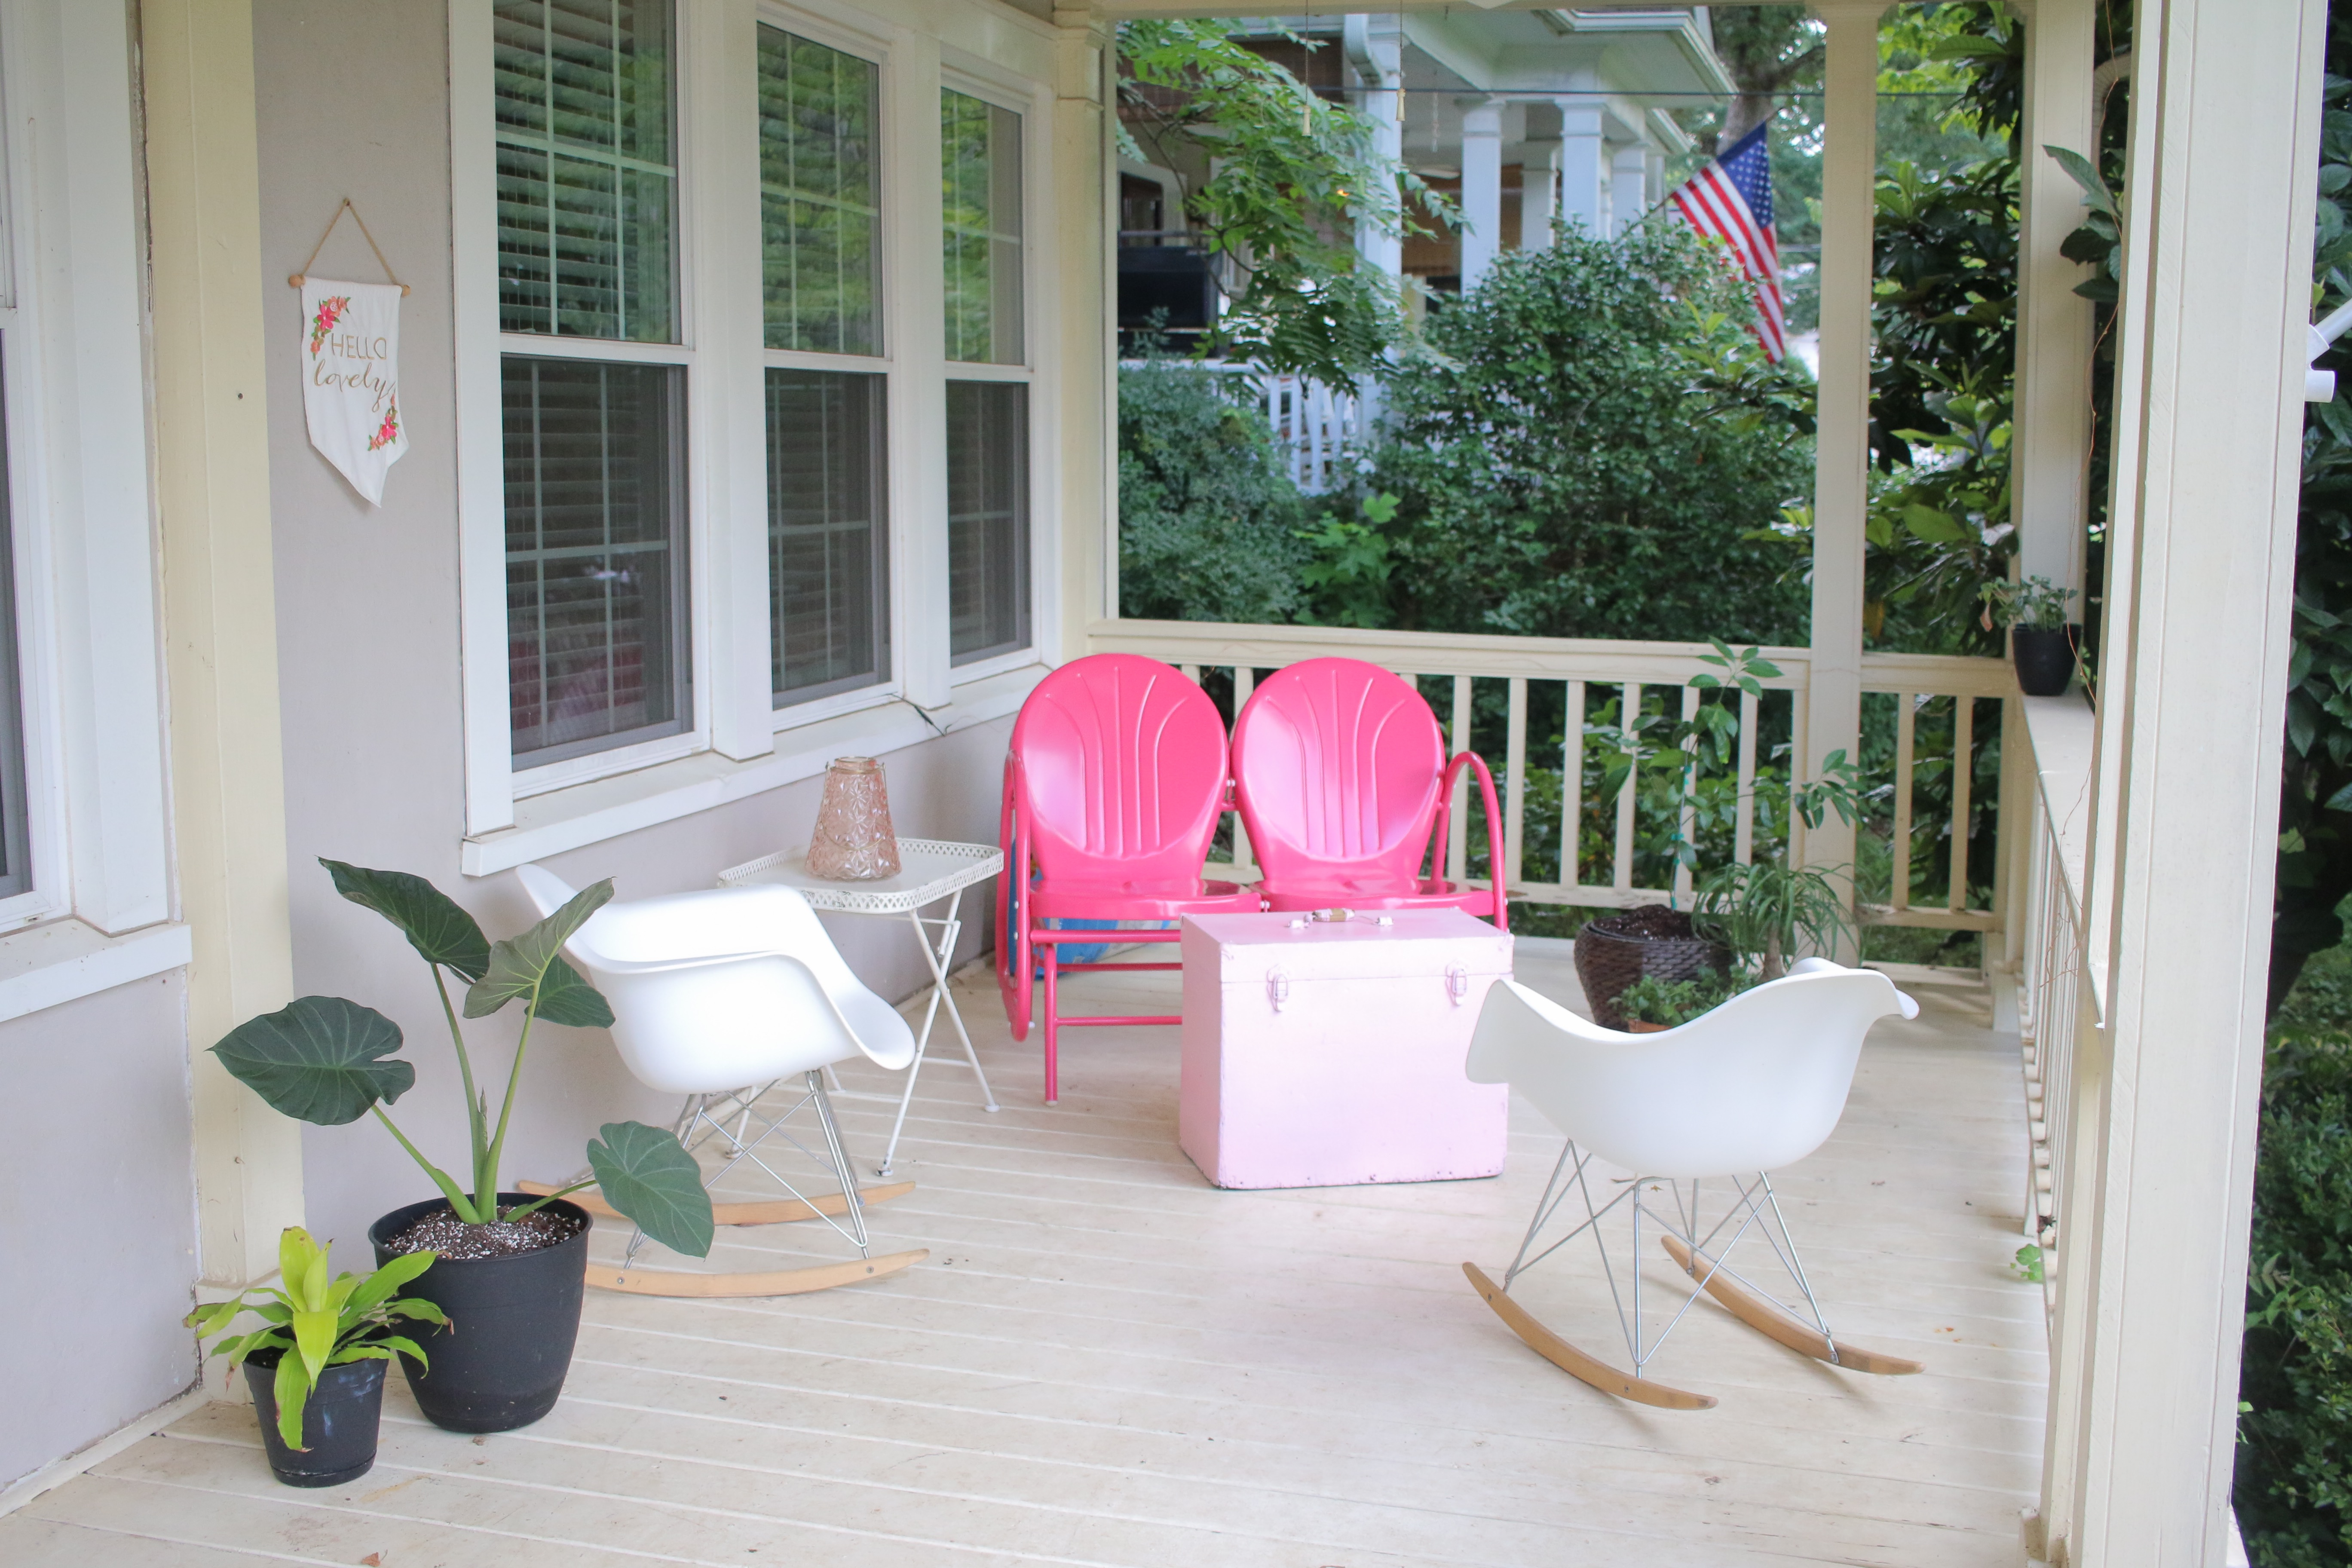 The Front Porch | MrsAmberApple